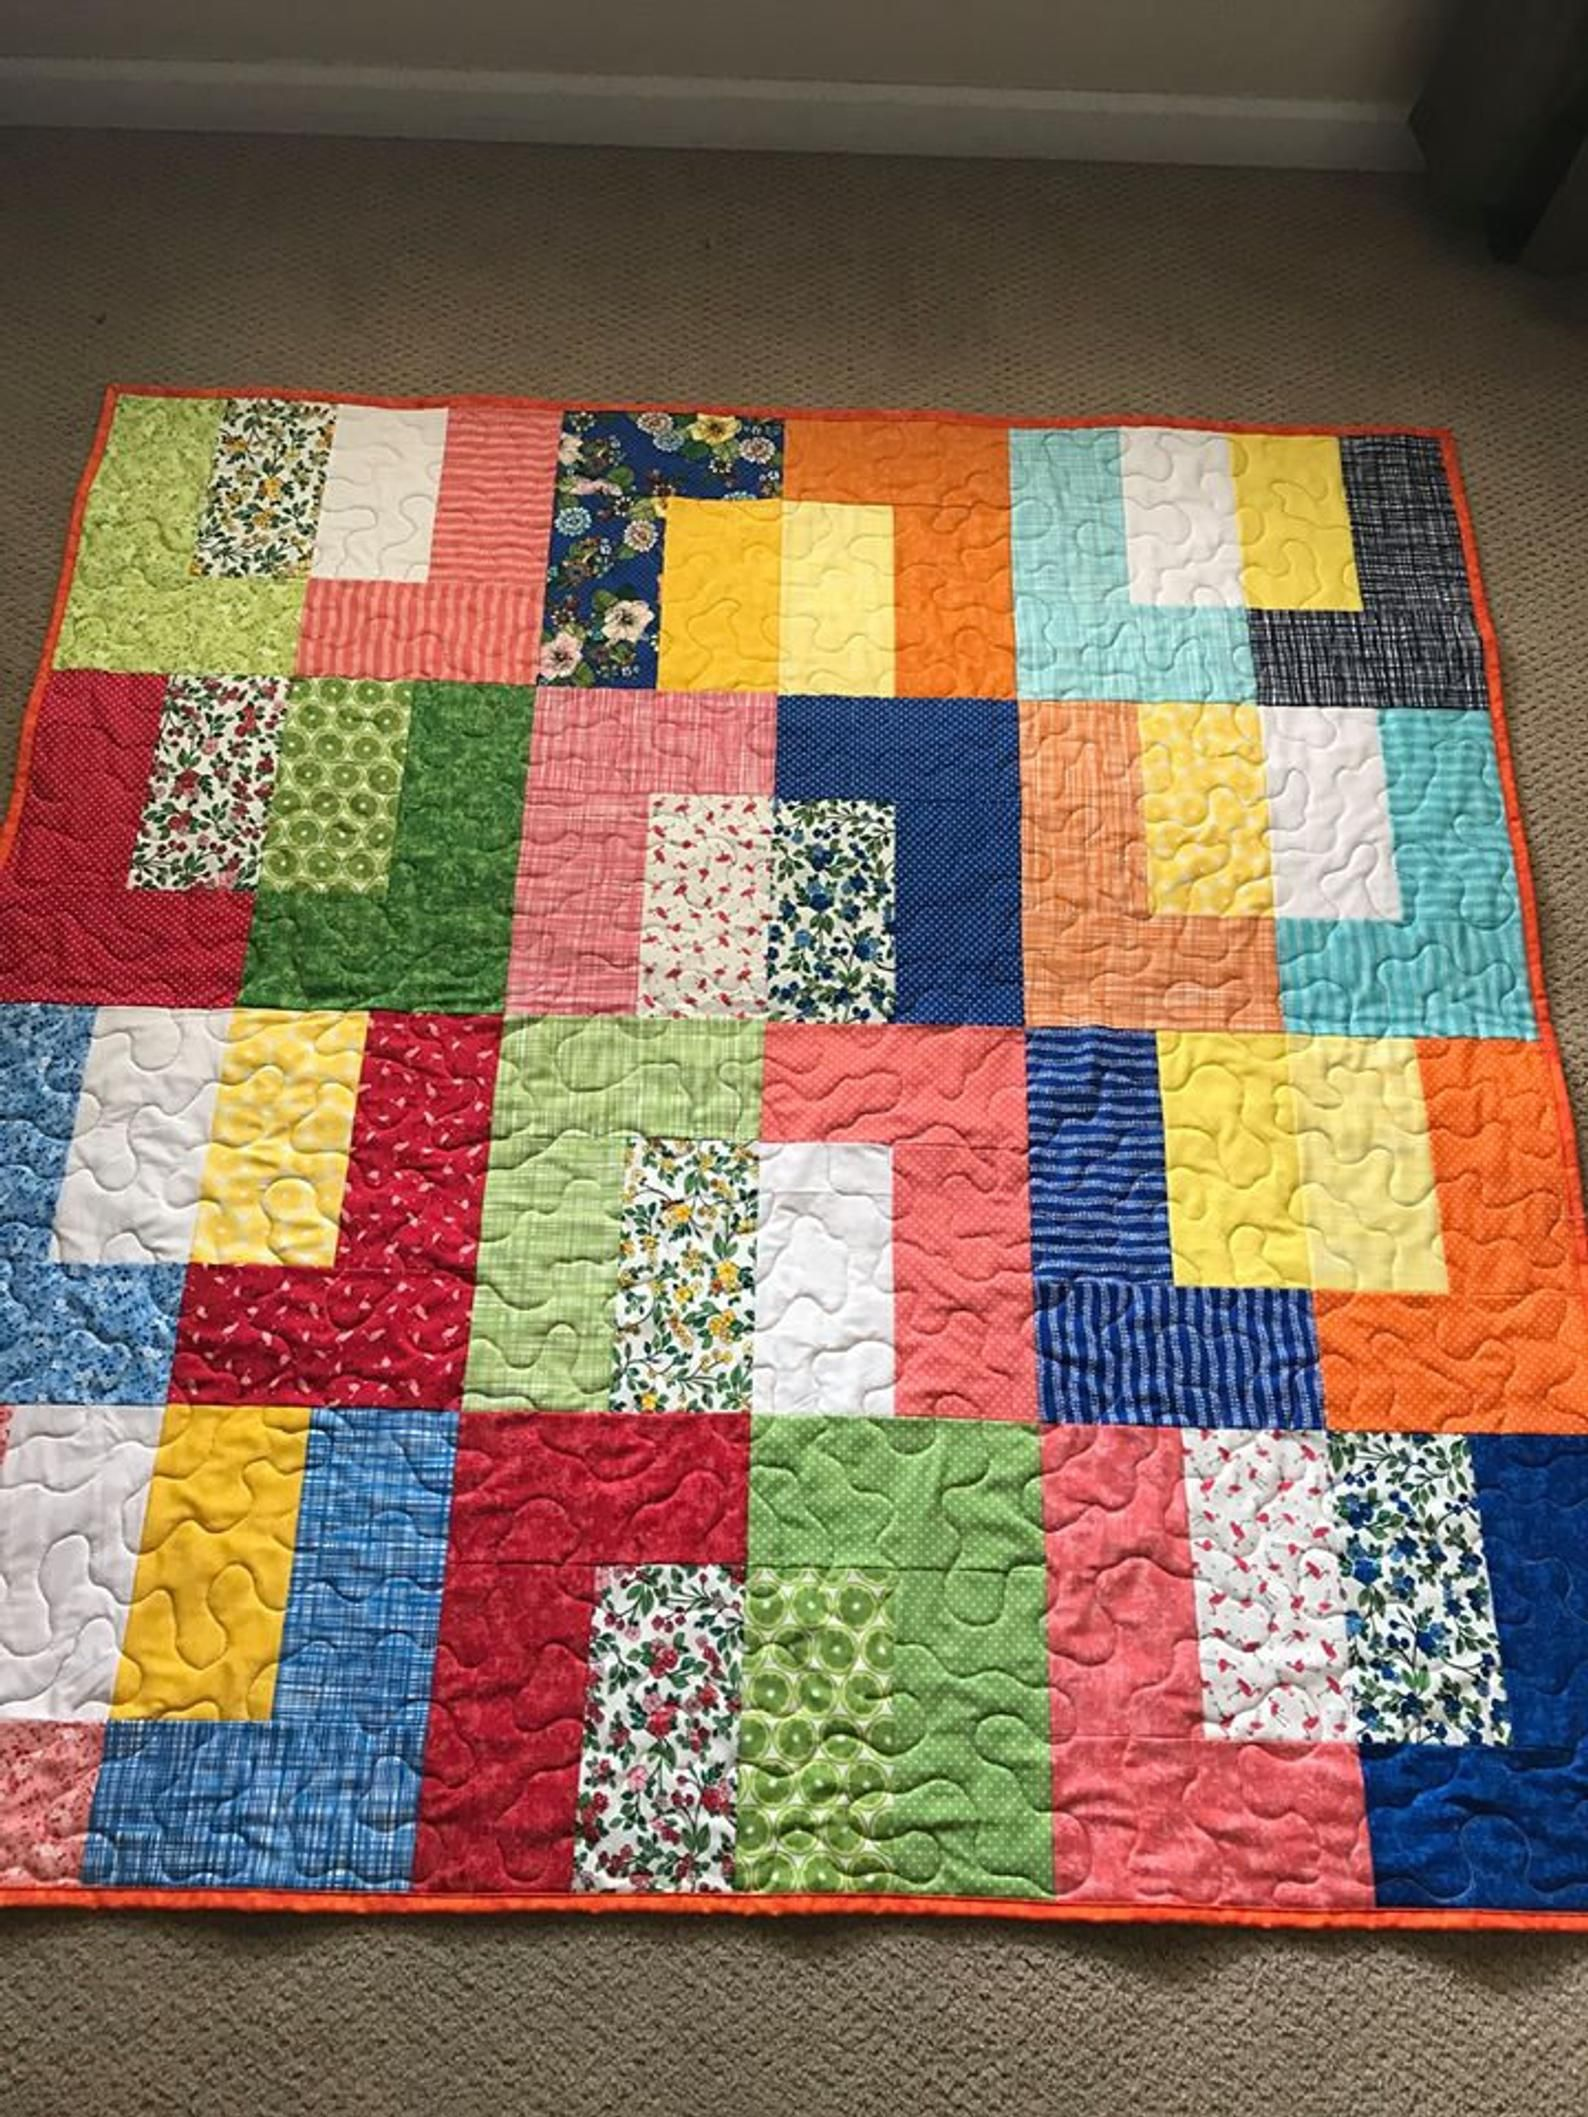 Pdf Lap Quilt Pattern Quick And Easy Layer Cake Etsy Lap Quilt Patterns Quilt Patterns Lap Quilt